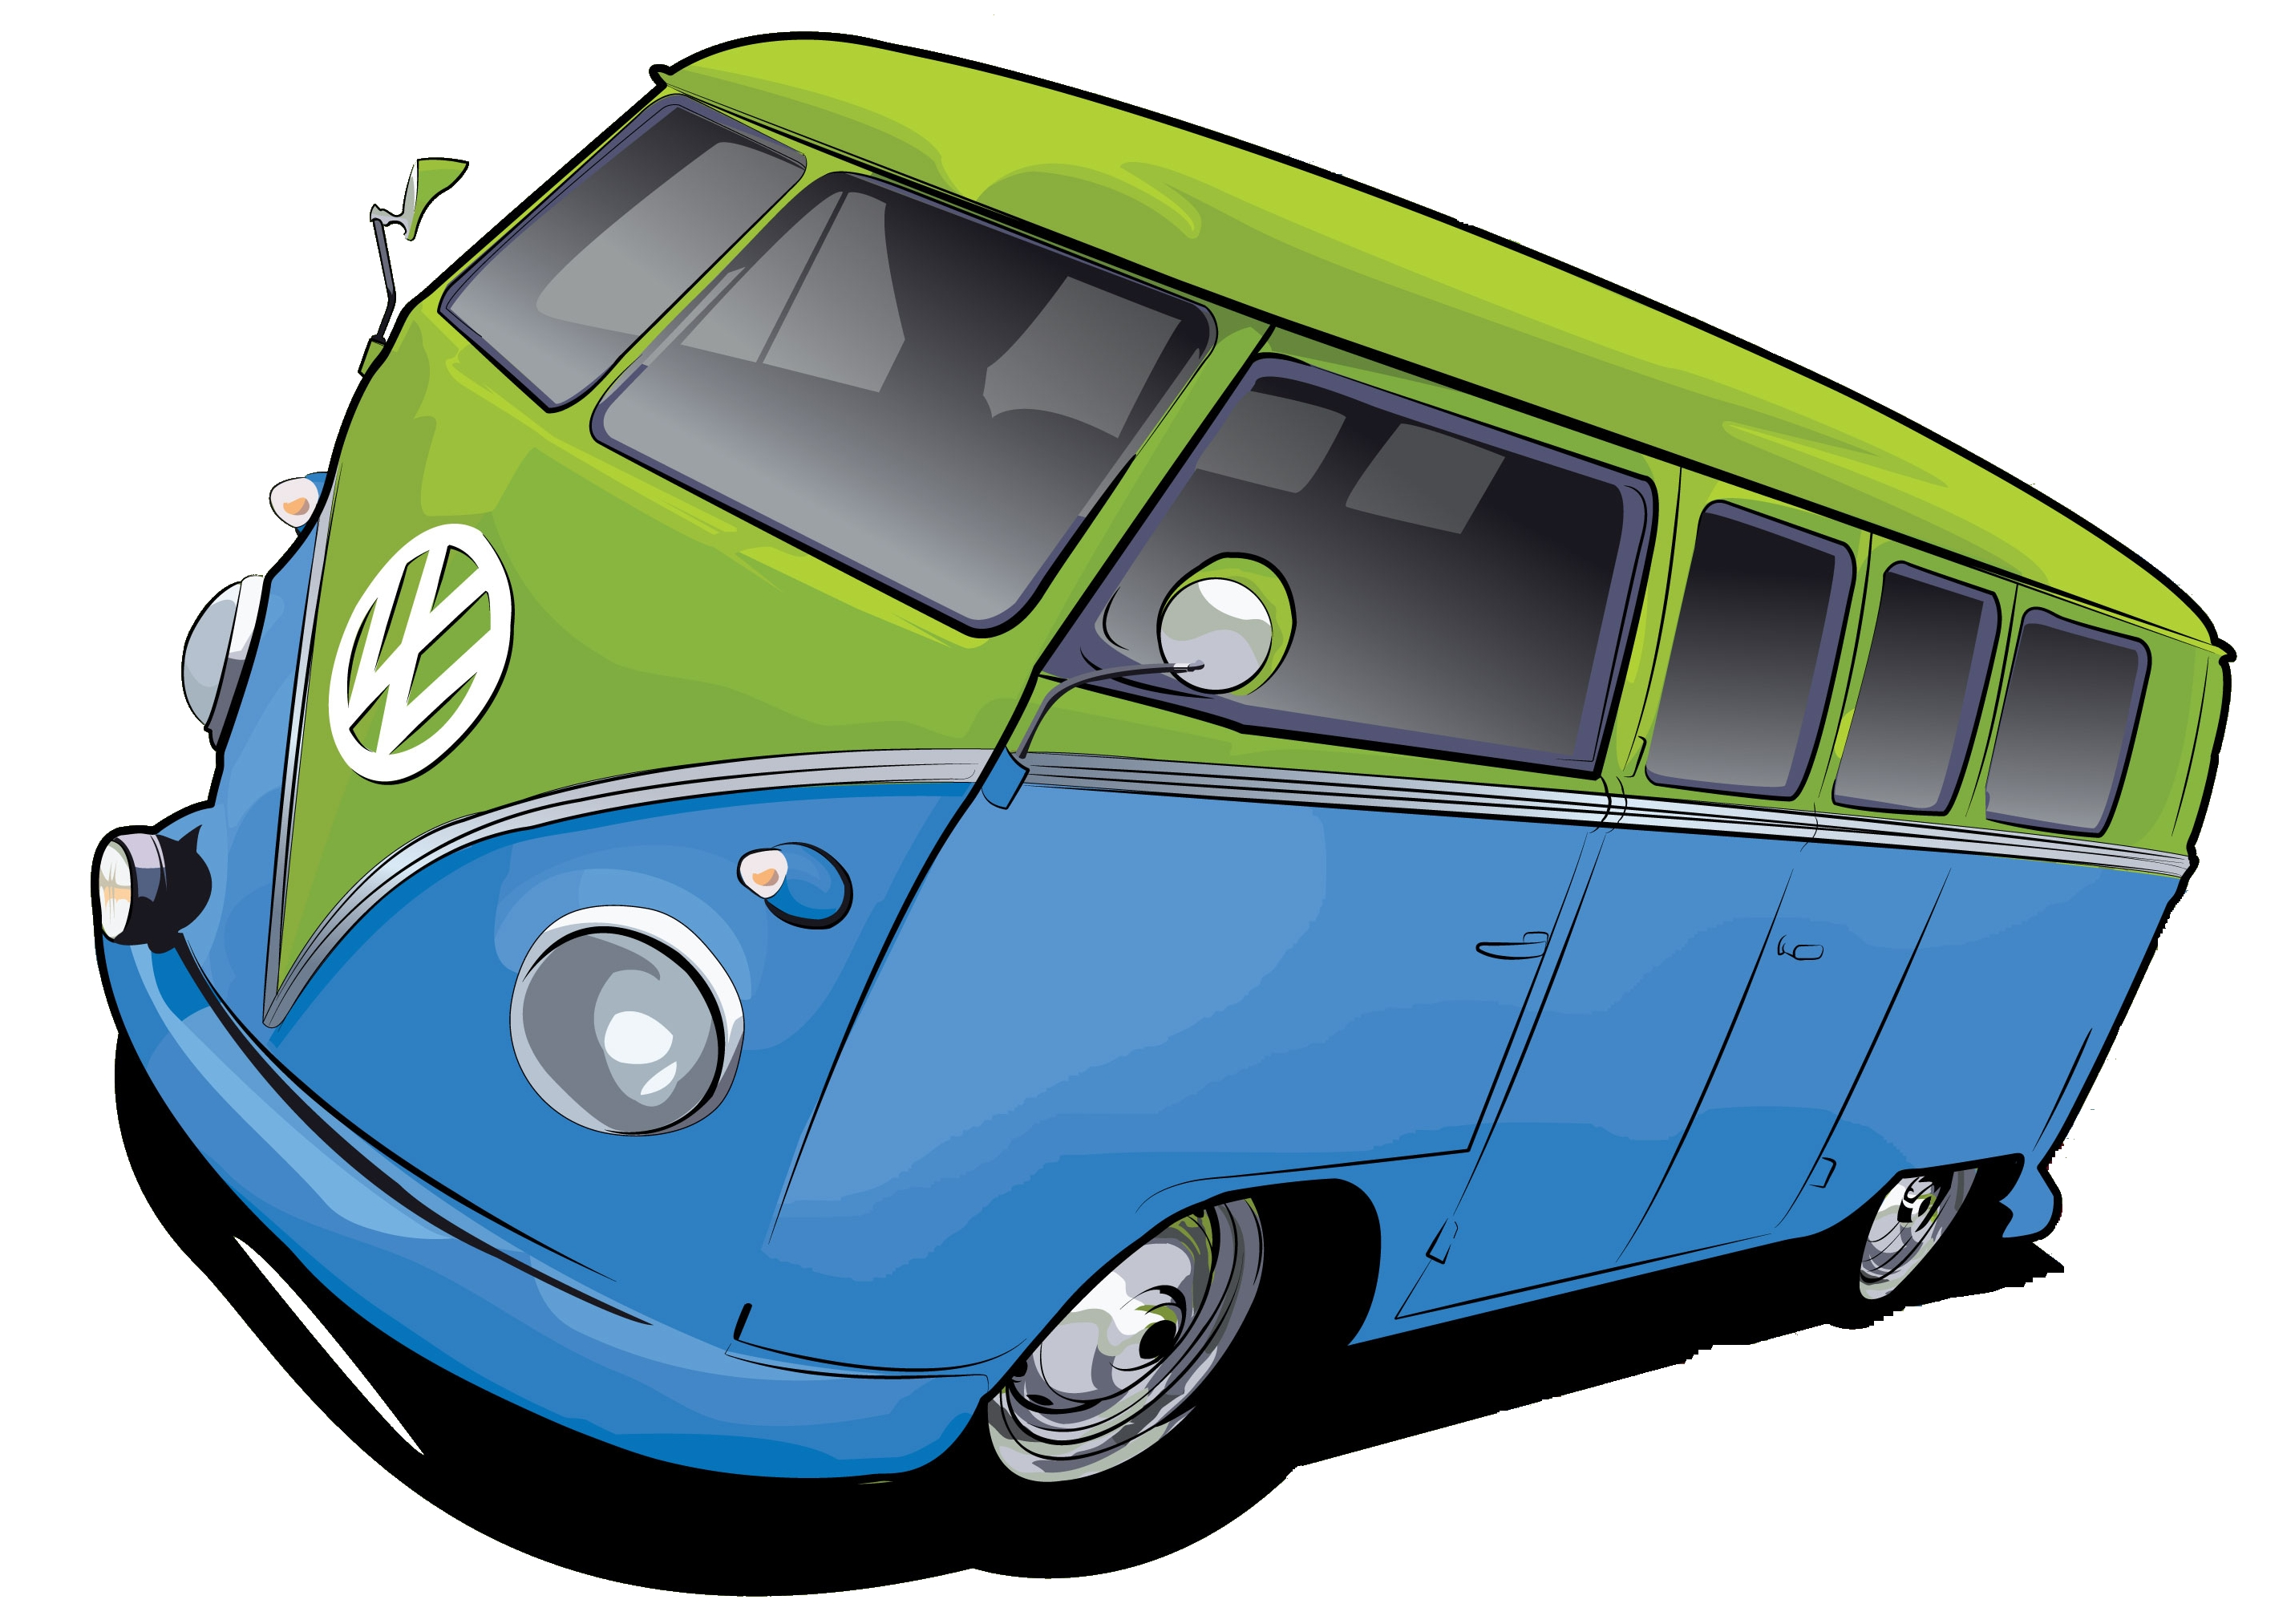 Vw Bus By Stxd S